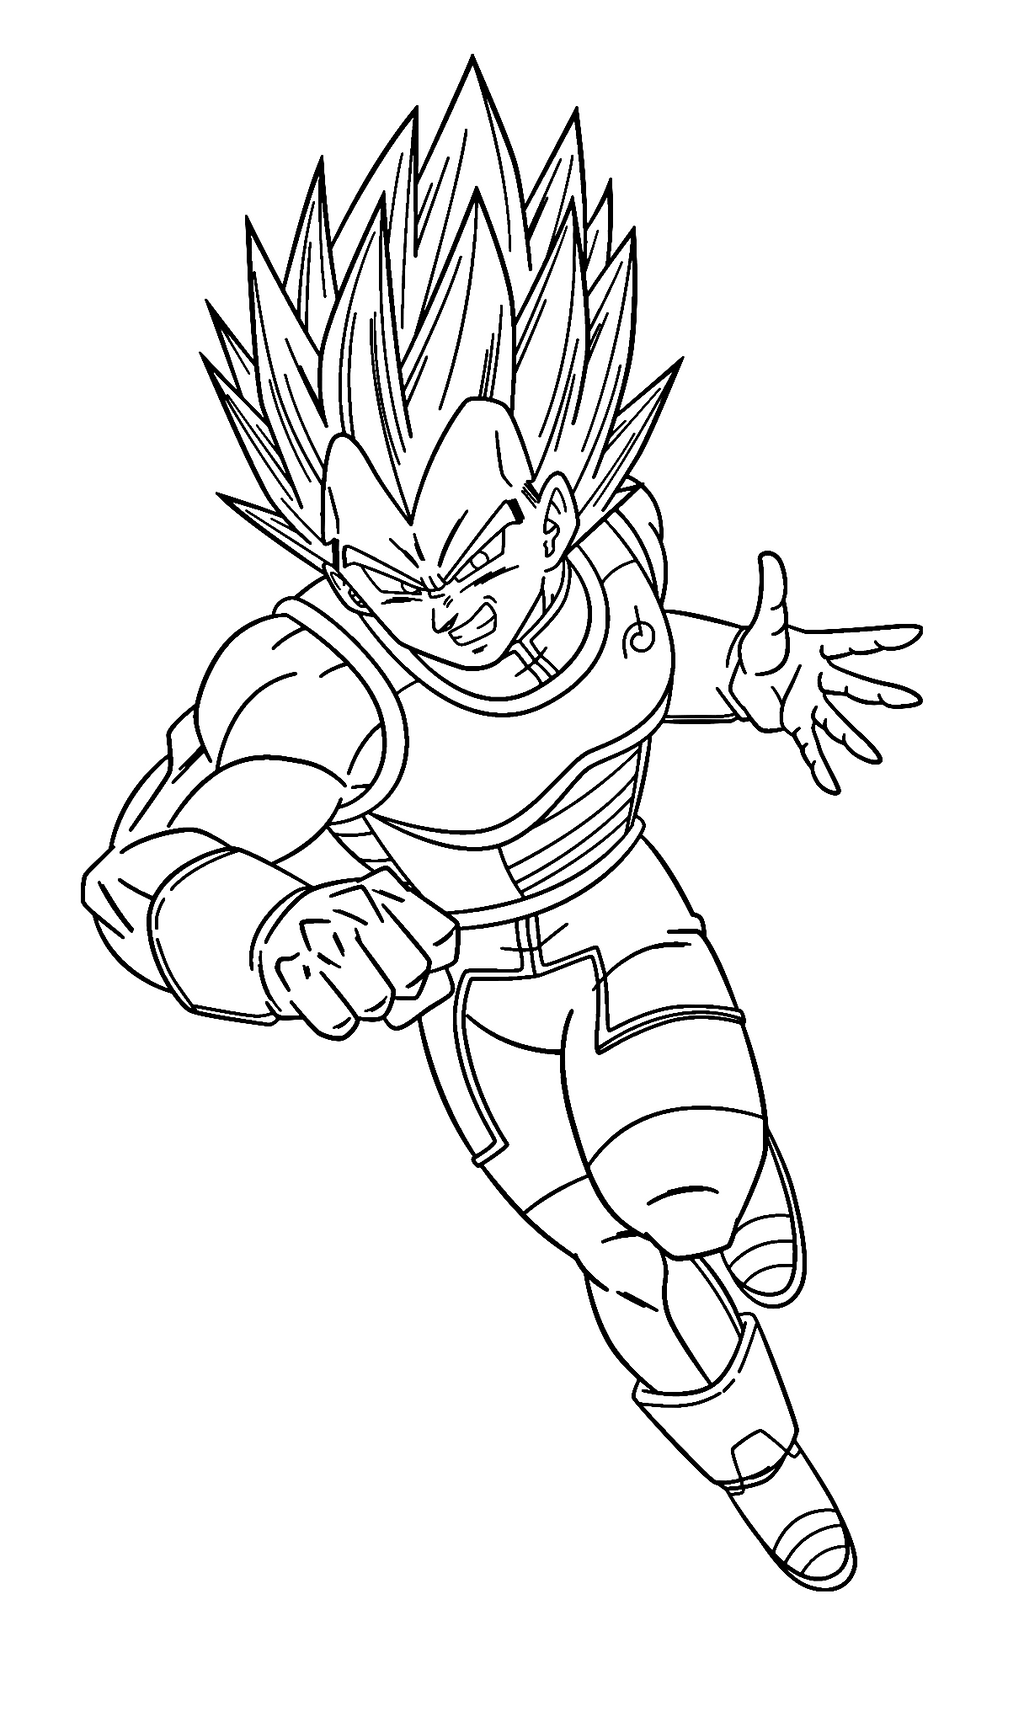 Super saiyan blue vegeta coloring page by sanorace on for Goku ssj coloring pages